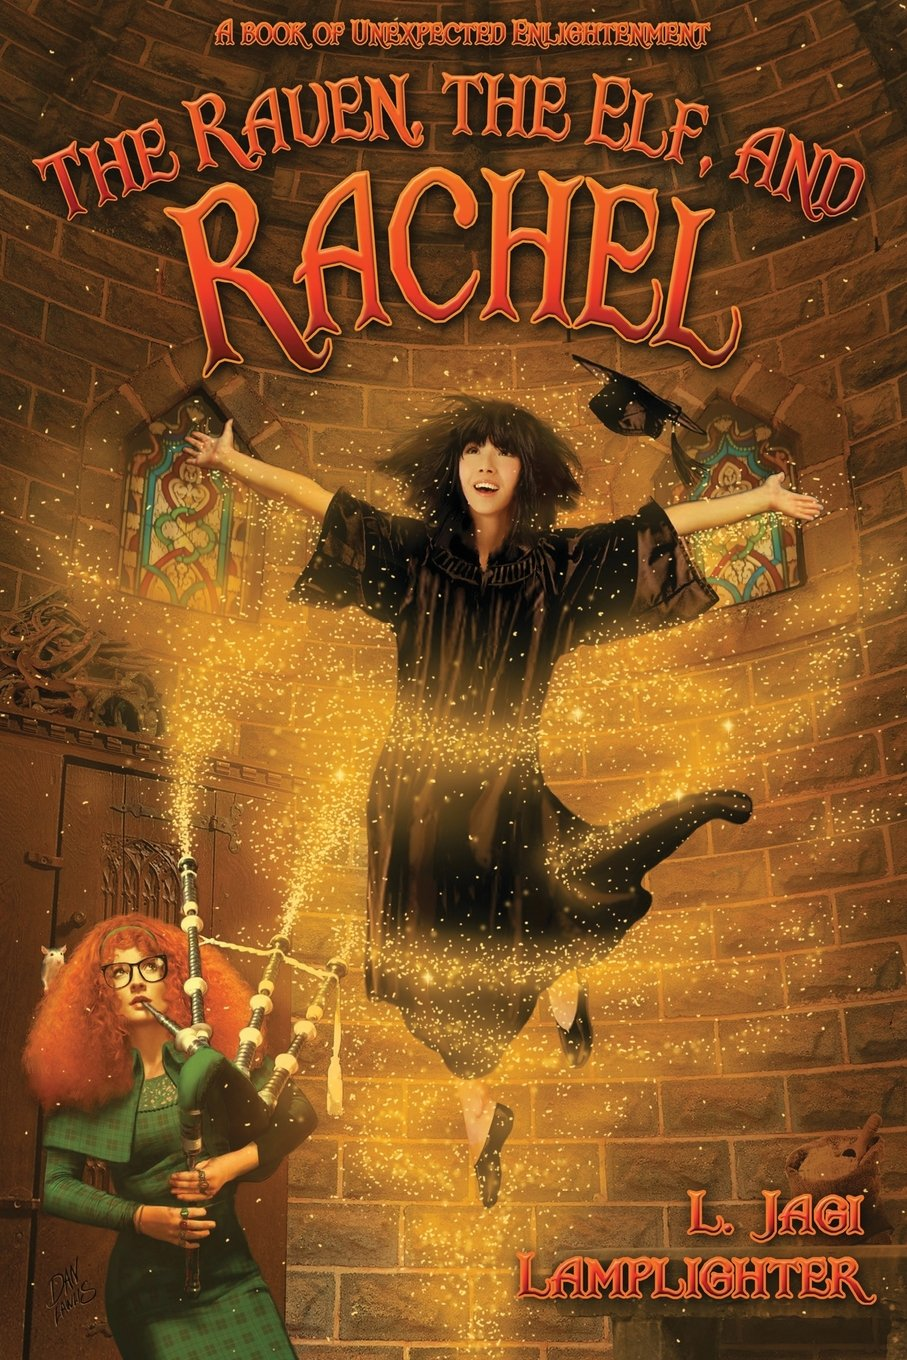 The Raven, The Elf, and Rachel (The Books of Unexpected Enlightenment) (Volume 2) pdf